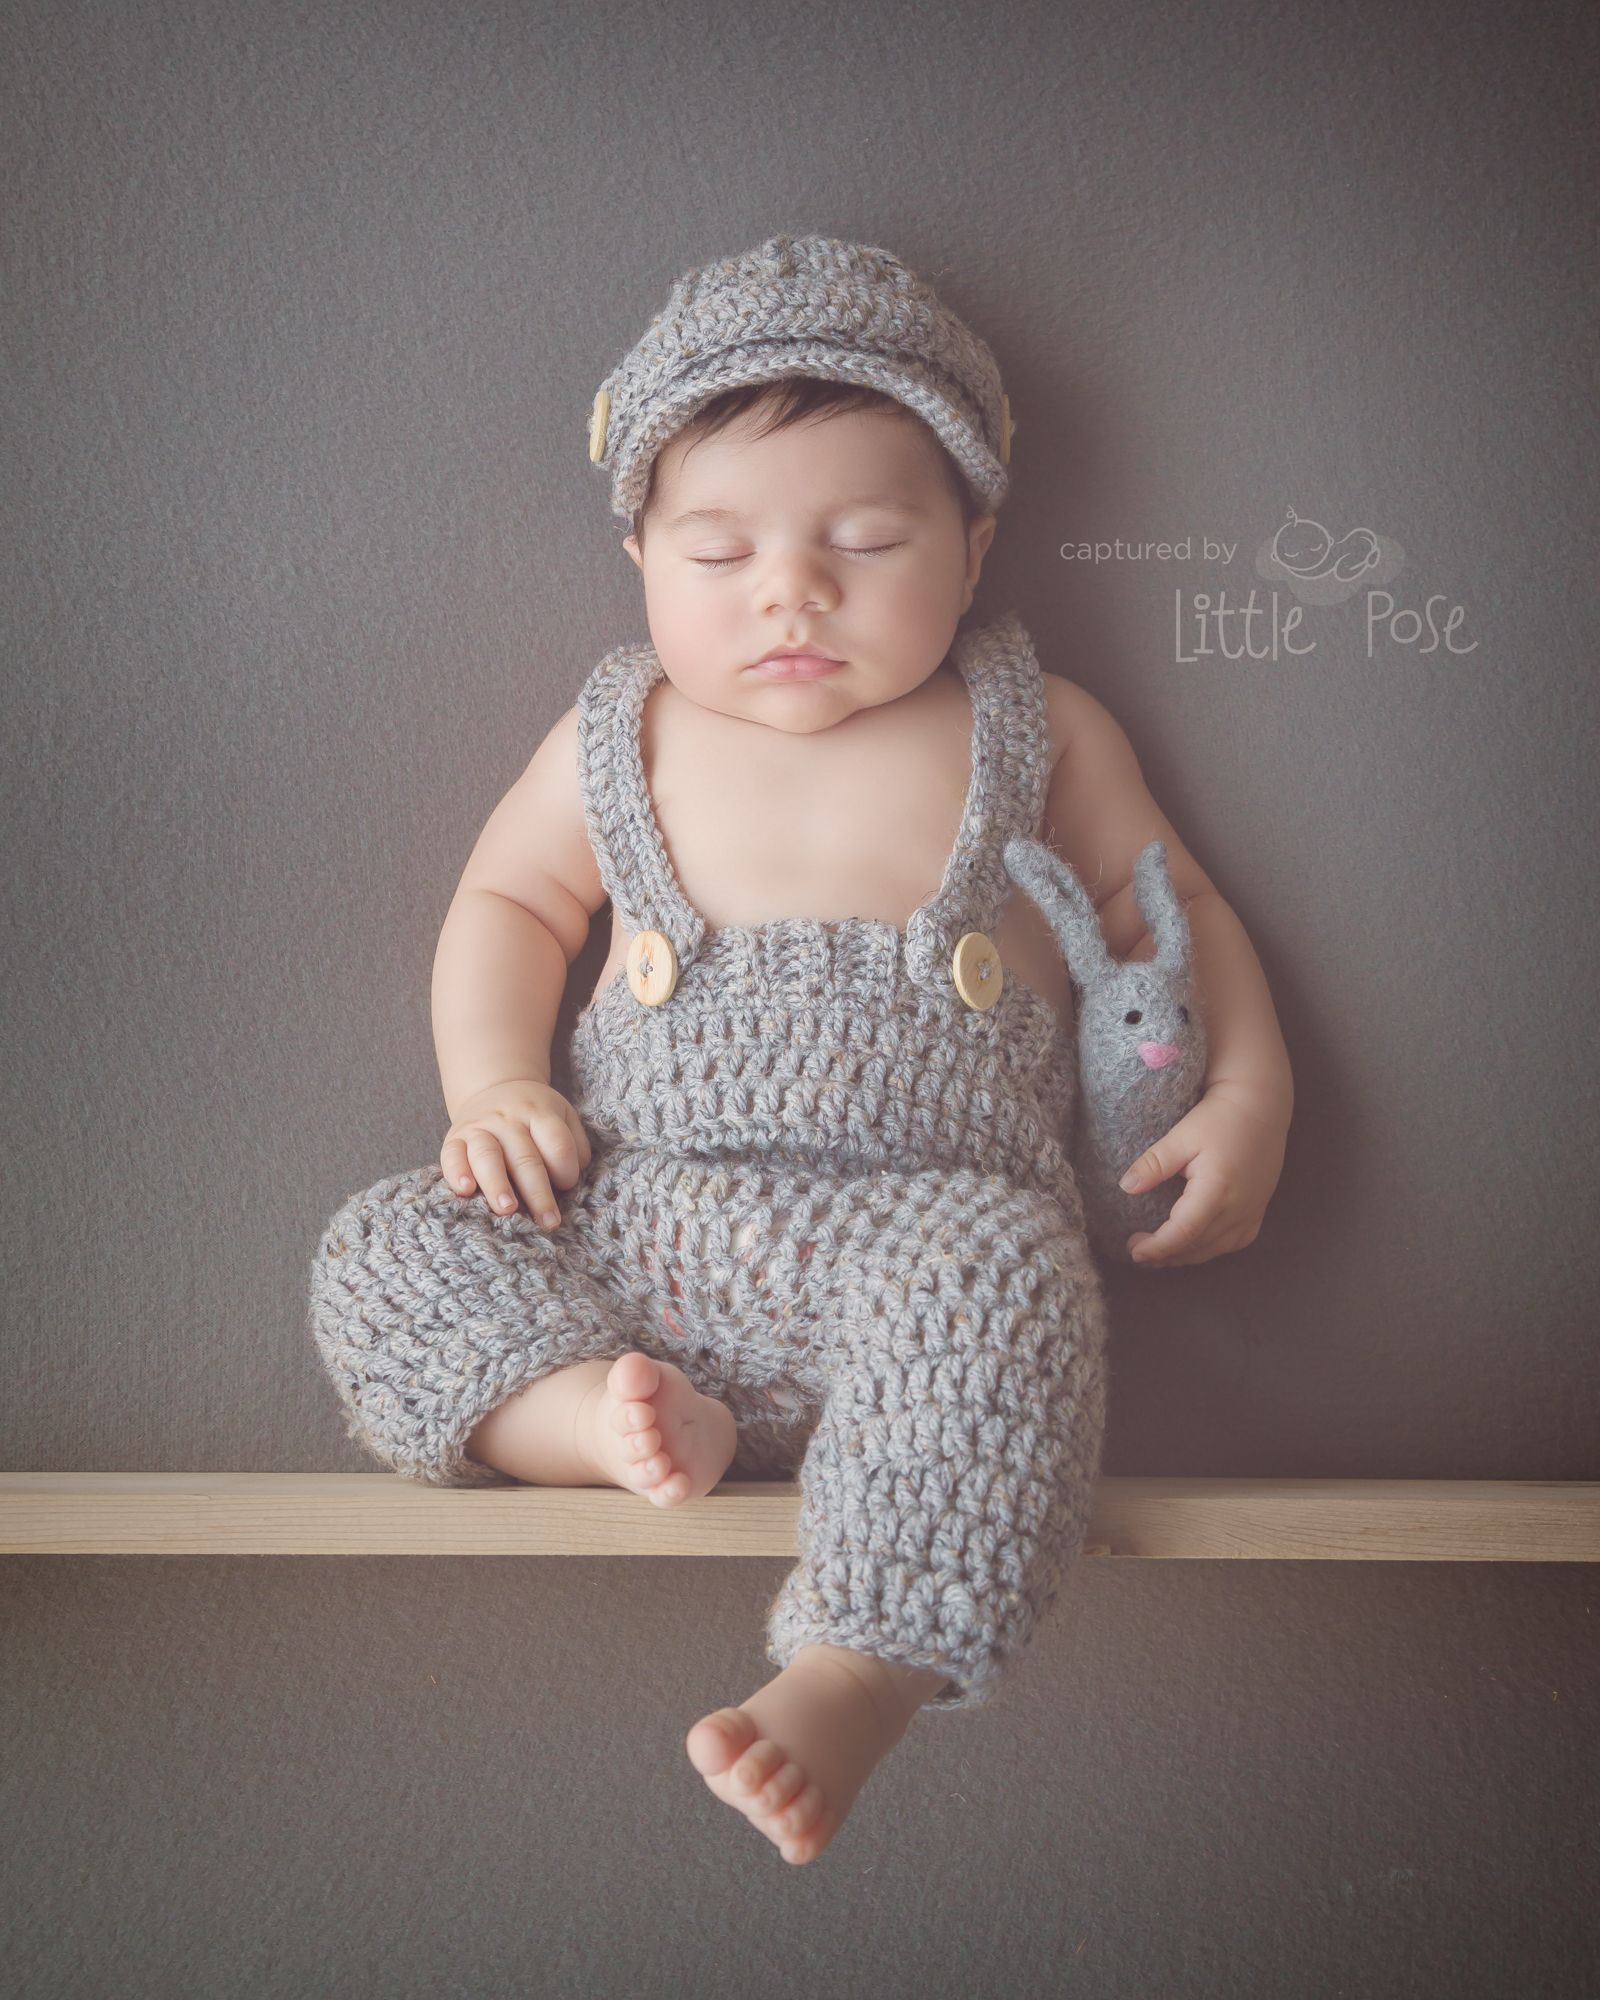 Older Baby Photography Cute Pose To Do With A 10 Week Old Baby Crochet Baby Boy Hat Crochet Baby Crochet Baby Boy